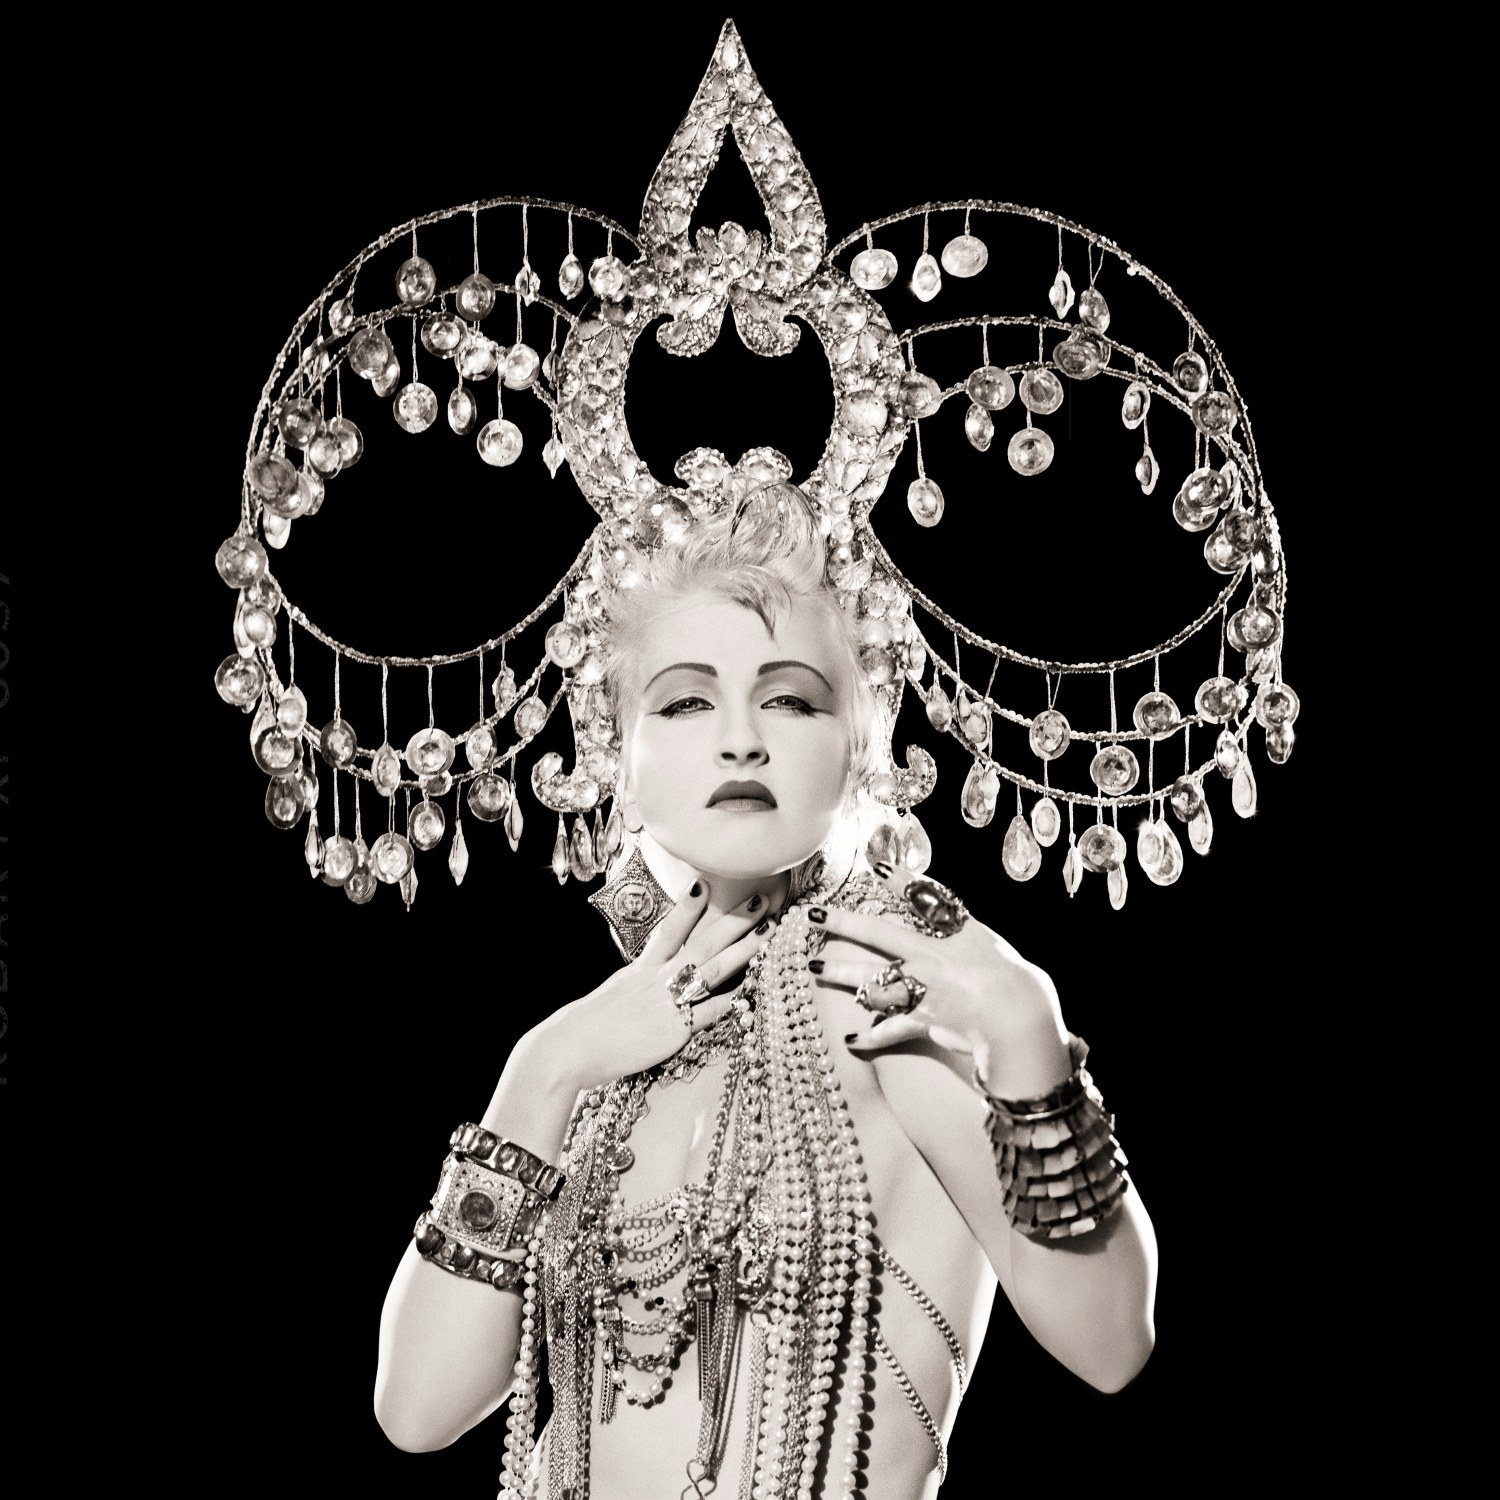 """LA Fashion Festival 2019 Debuts Matthew Rolston's """"Hollywood Royale: Out of the School of Los Angeles"""" as a First-Ever Untethered Virtual Reality Gallery Experience, Presented by The Mill - Matthew Rolston, Cyndi Lauper, Headdress, Los Angeles, 1986, from the series"""